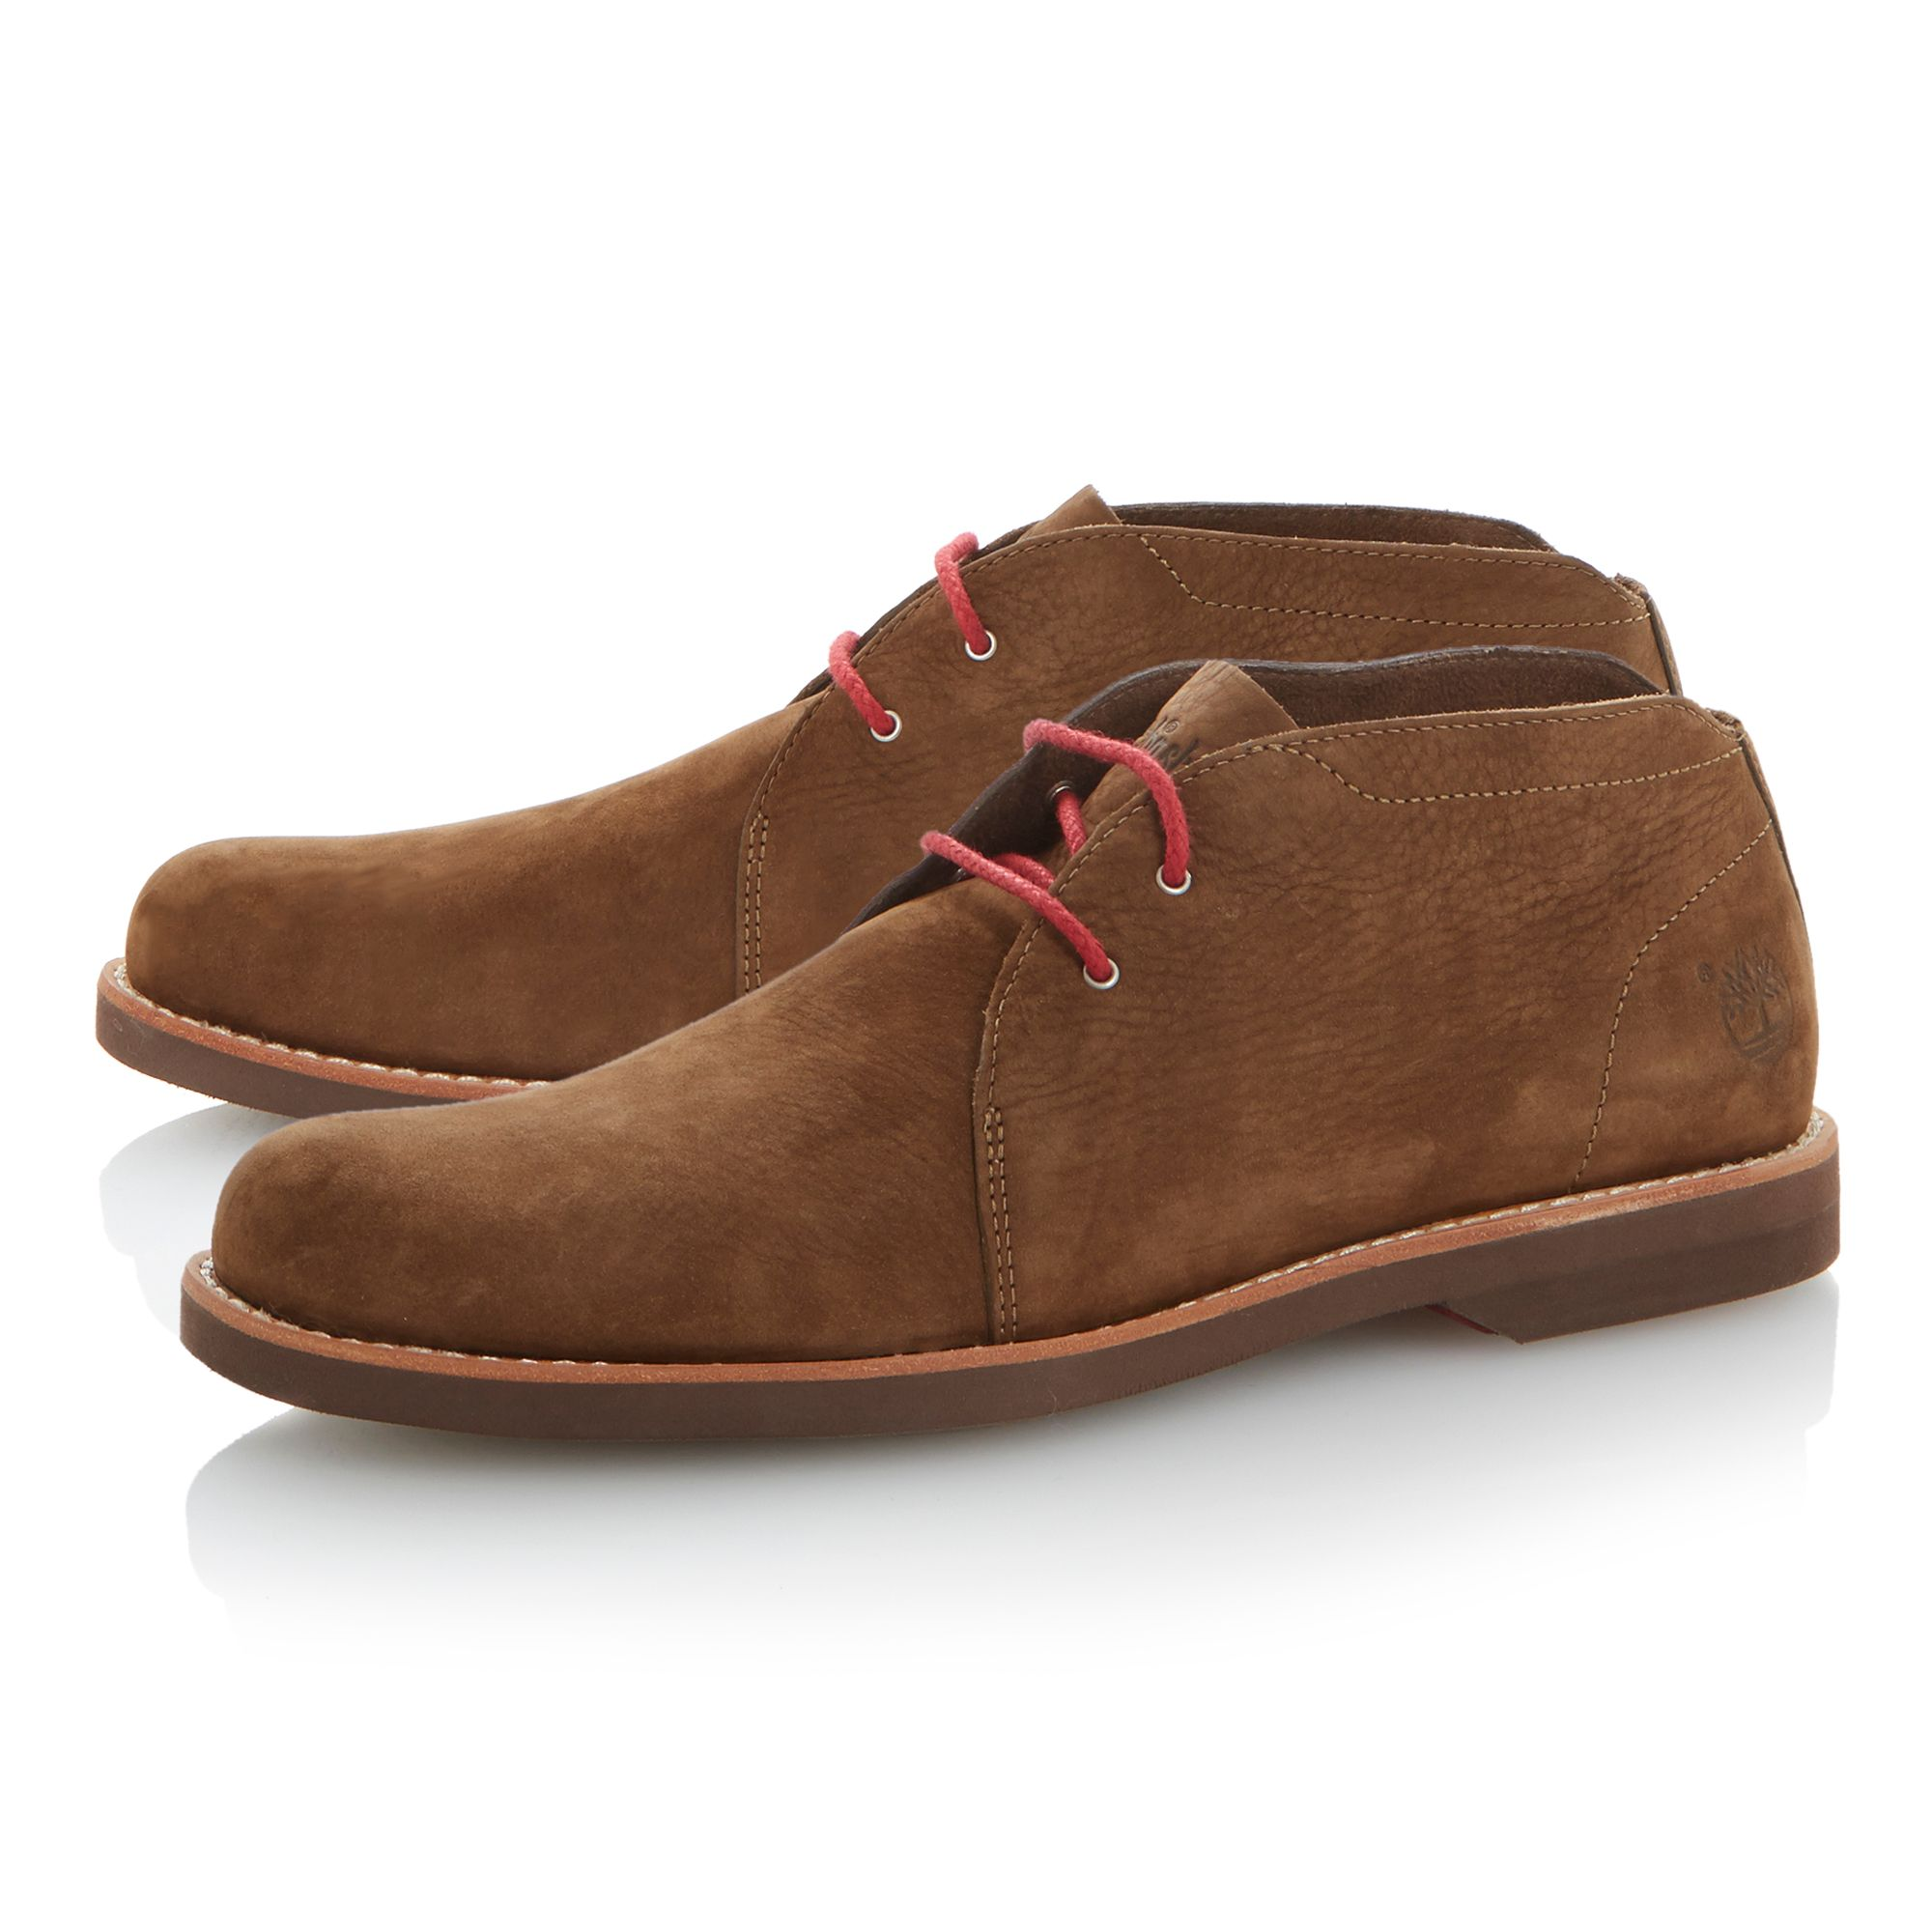 5361a lace up 2 eye chukka boots